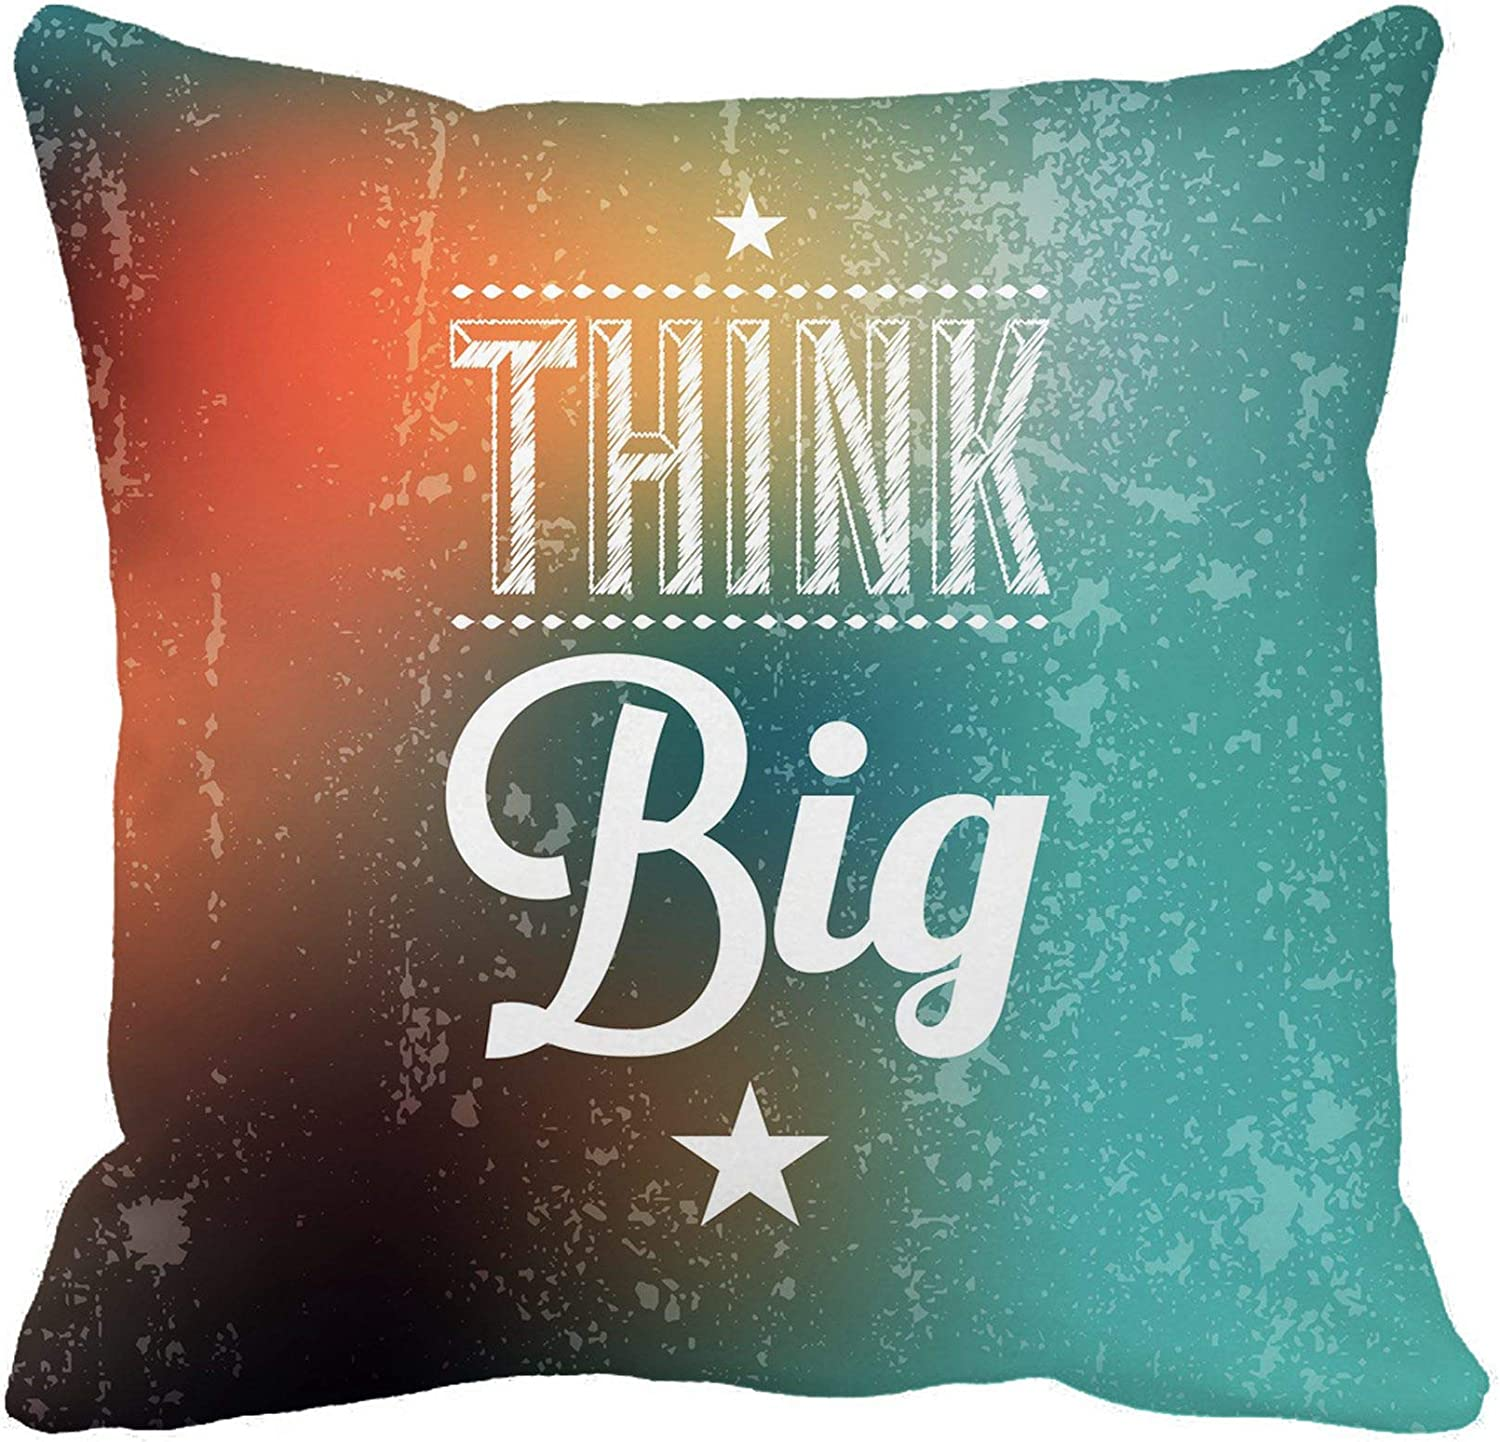 Awowee Throw Pillow Cover Colorful Word Abstract Typographical Quote Think Big Marketing Hipster 18x18 Inches Pillowcase Home Decorative Square Pillow Case Cushion Cover Amazon Co Uk Kitchen Home